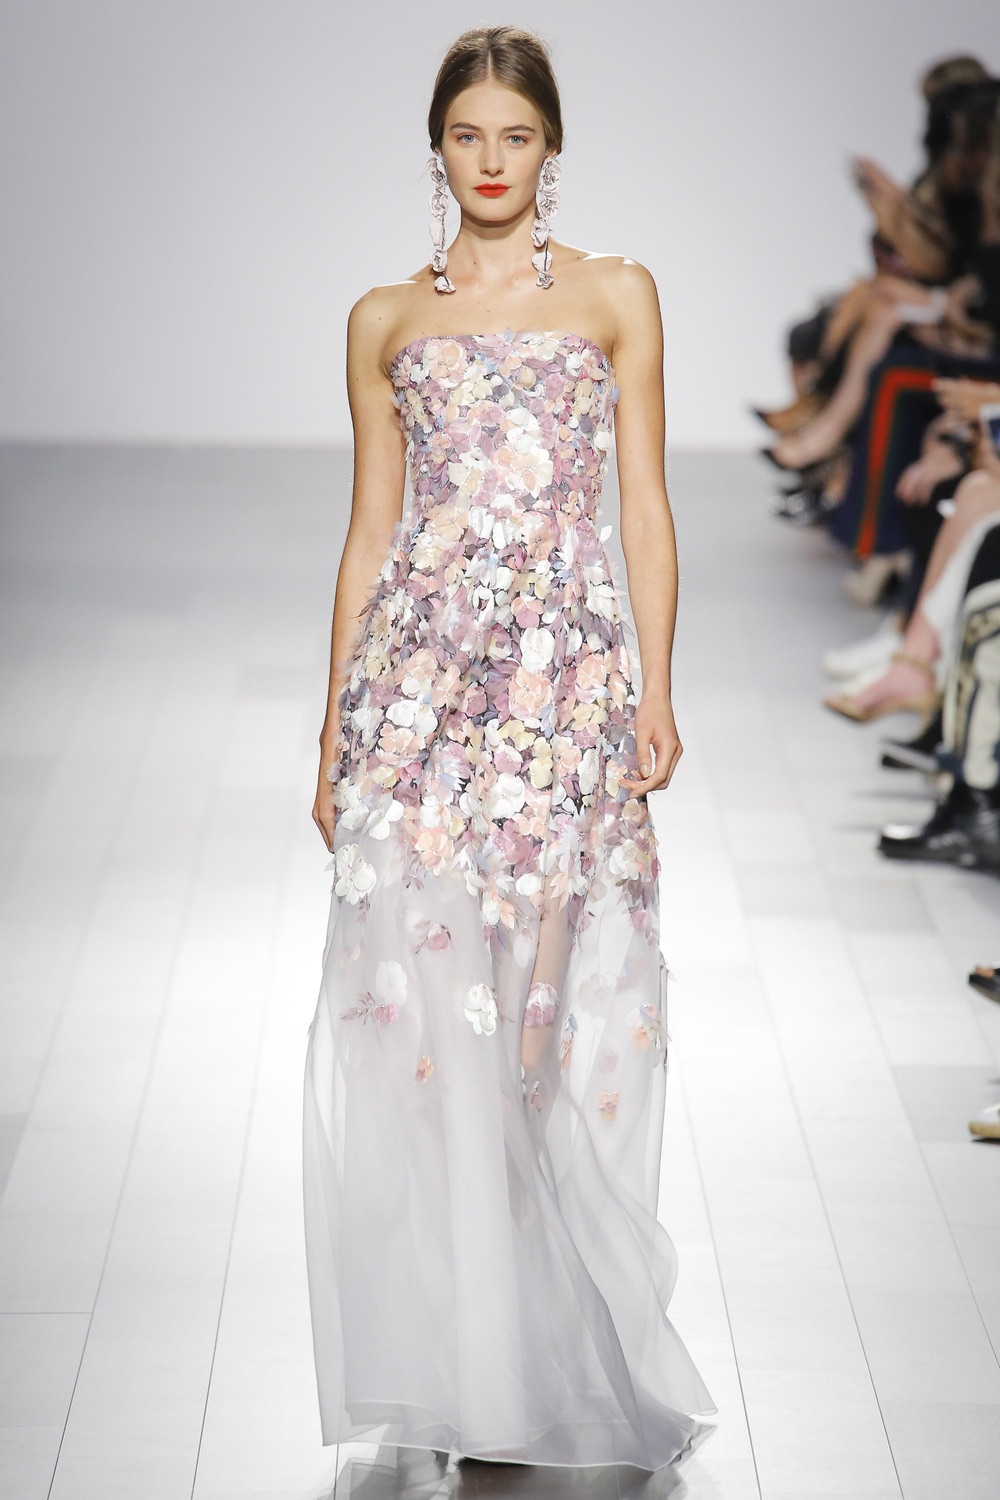 Badgley Mischka New York Fashion Week SS18